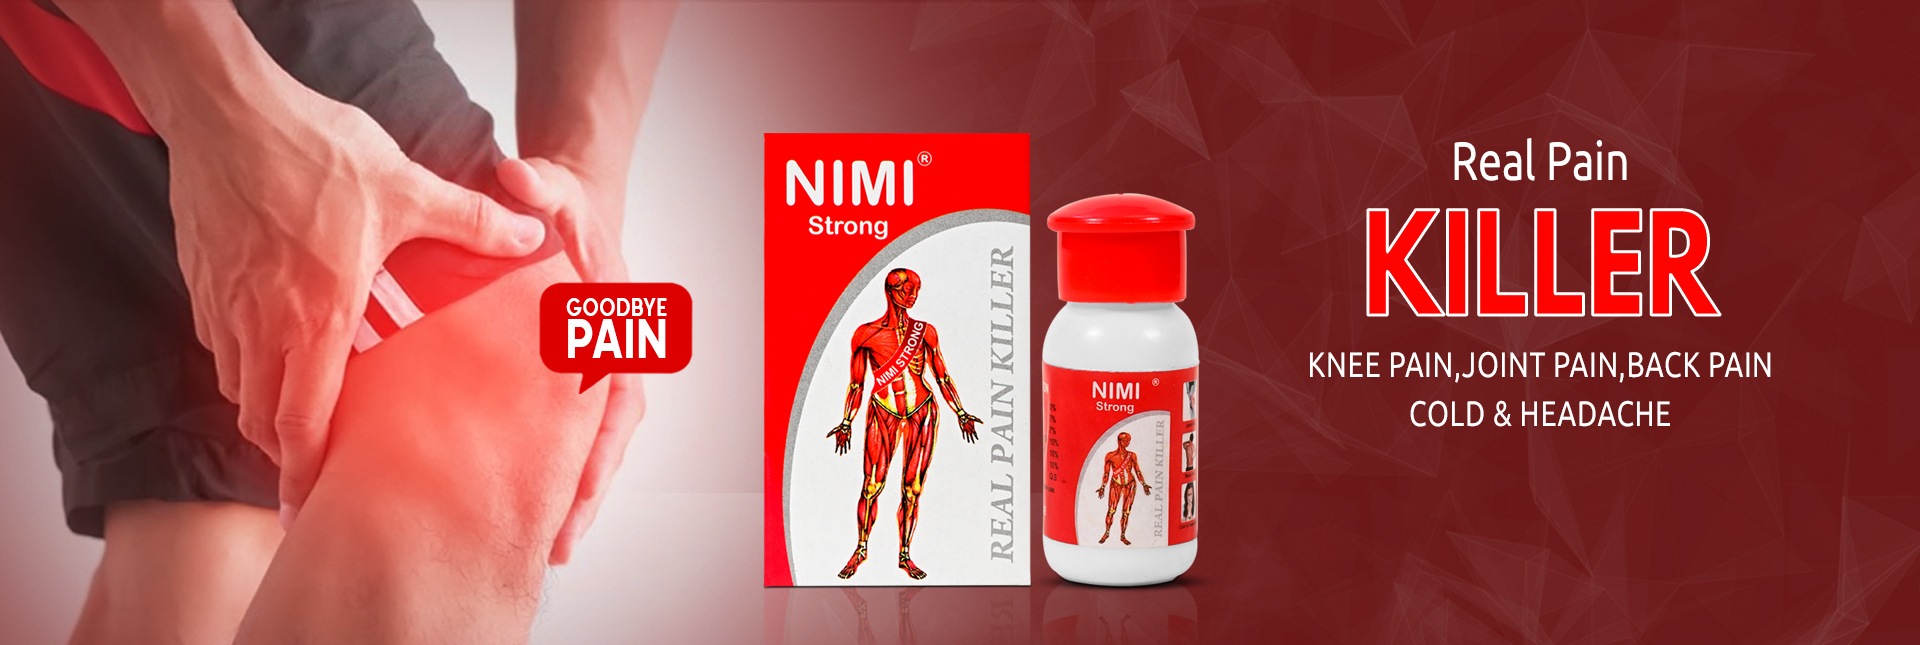 nimi strong - knee pain